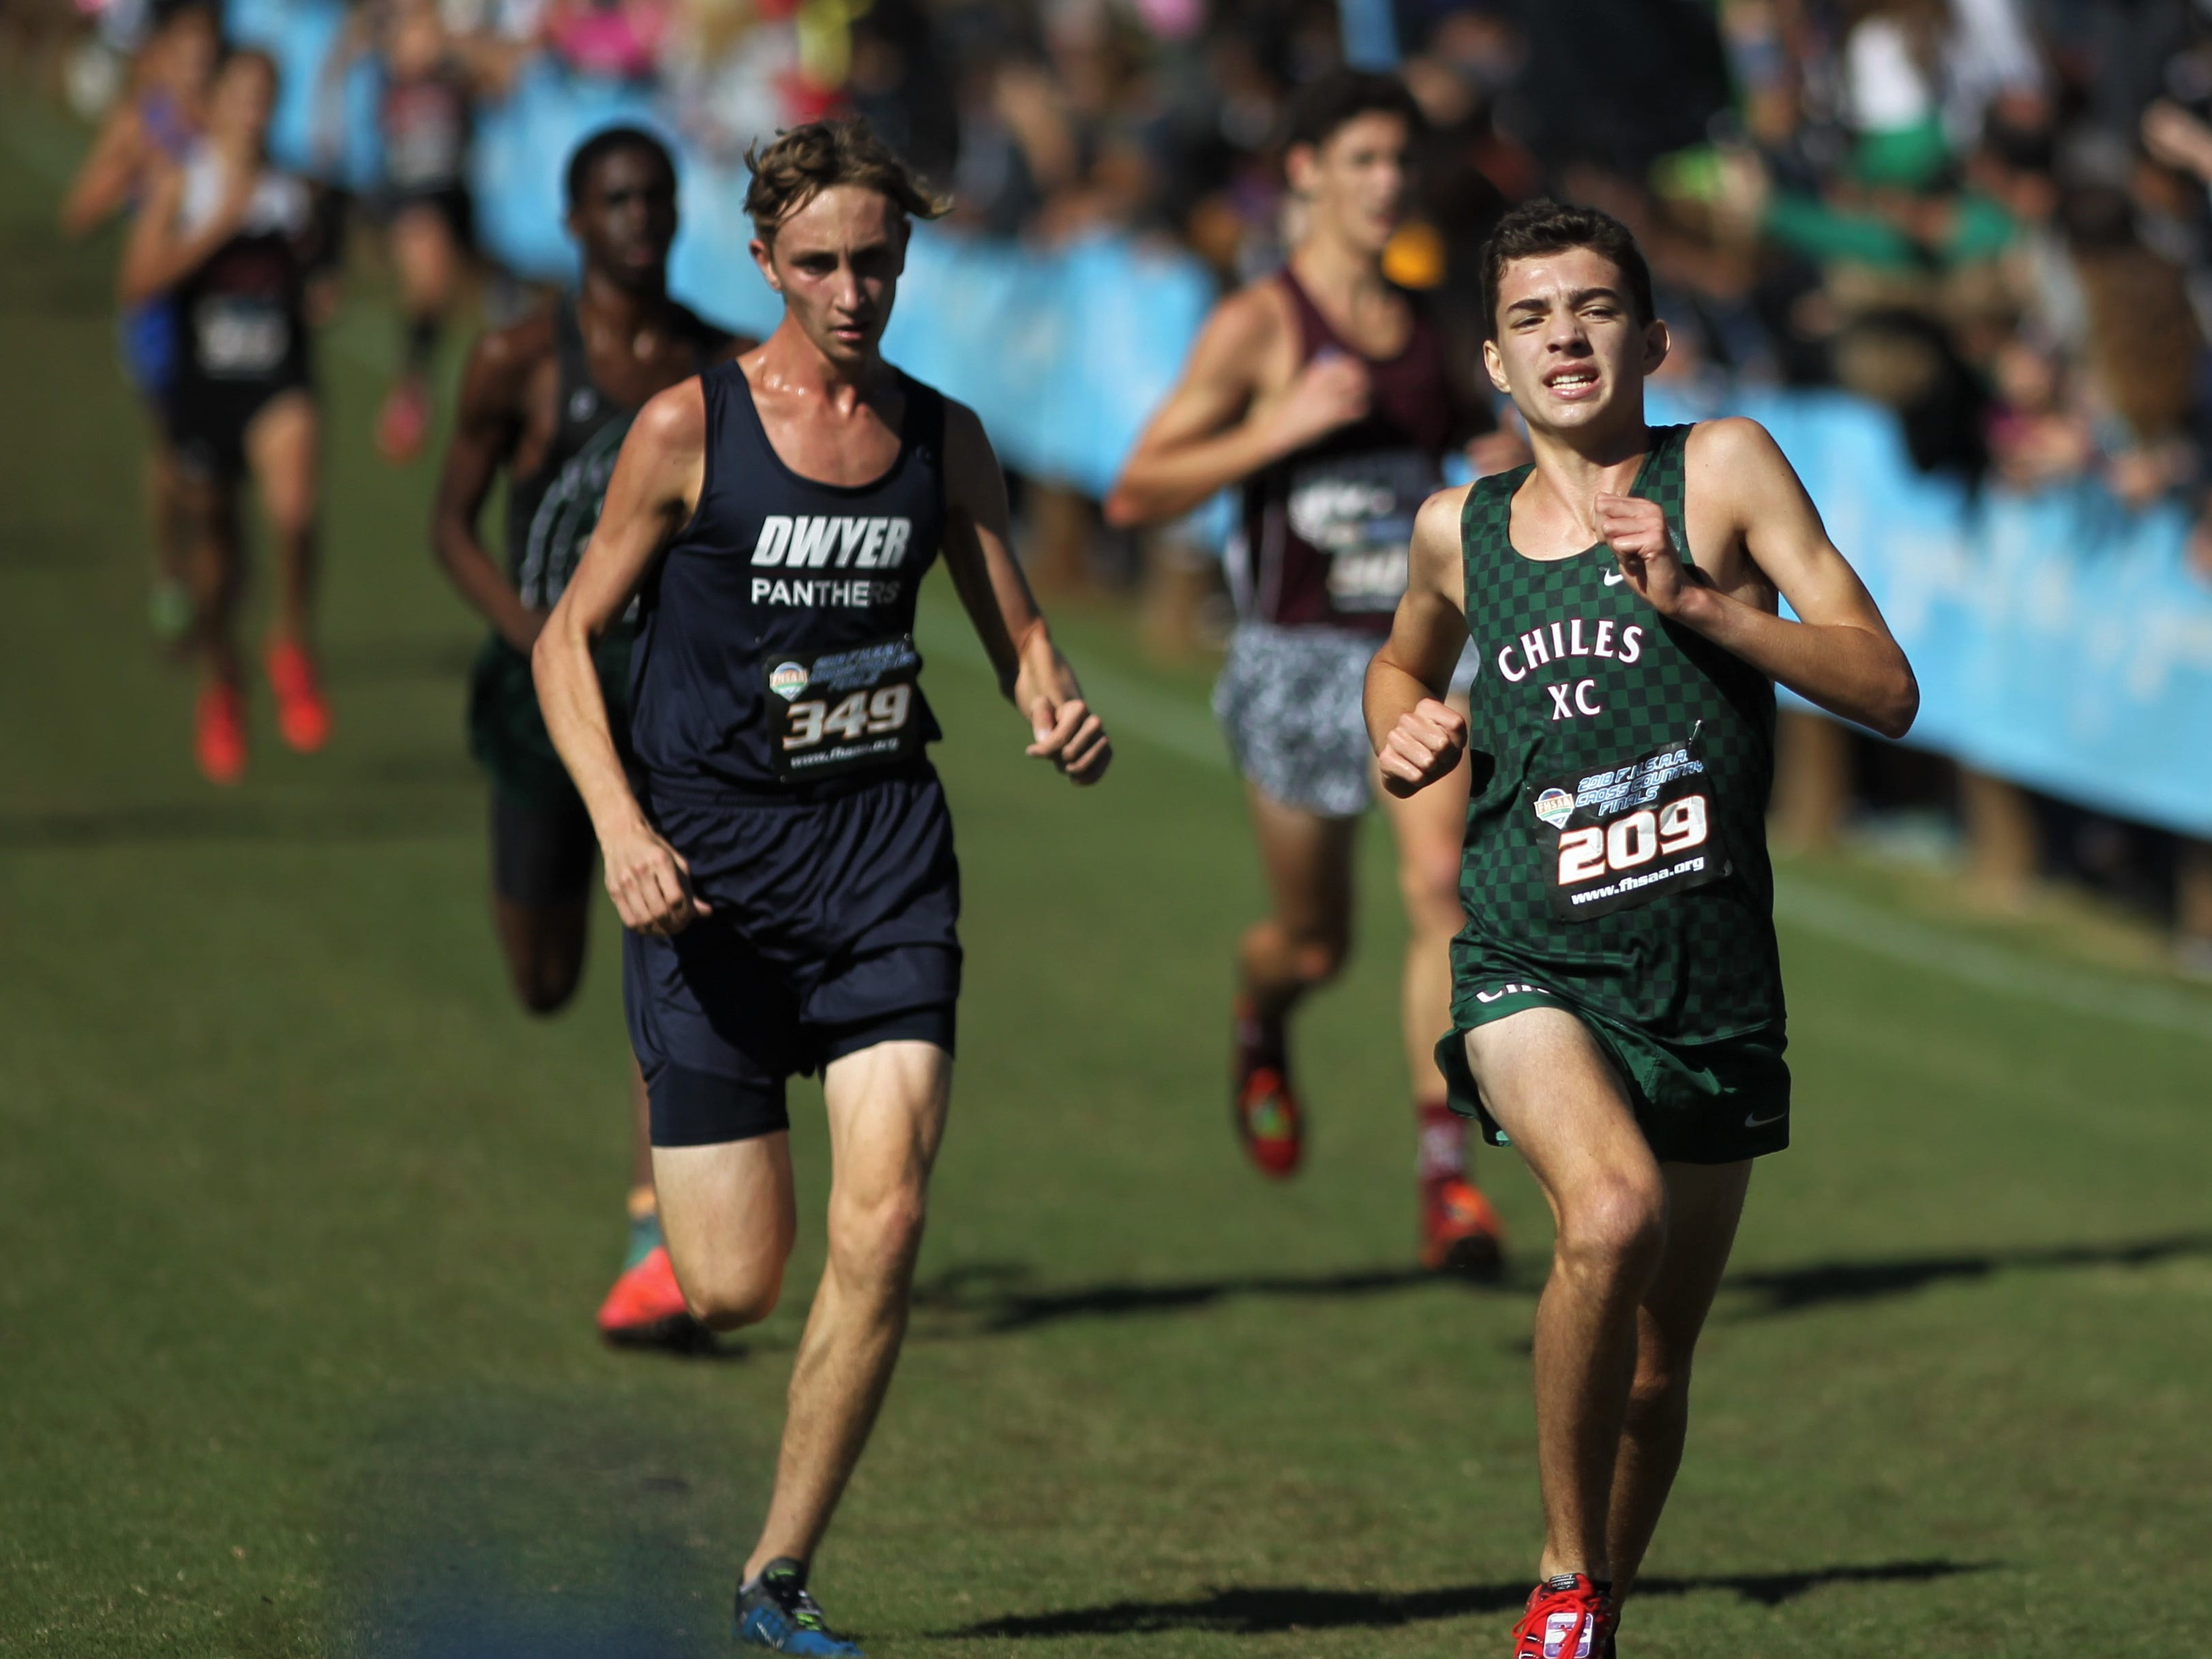 Chiles freshman Ben Kirbo races to the finish of the Class 3A boys race in the FHSAA Cross Country State Championships at Apalachee Regional Park on Saturday, Nov. 10, 2018.